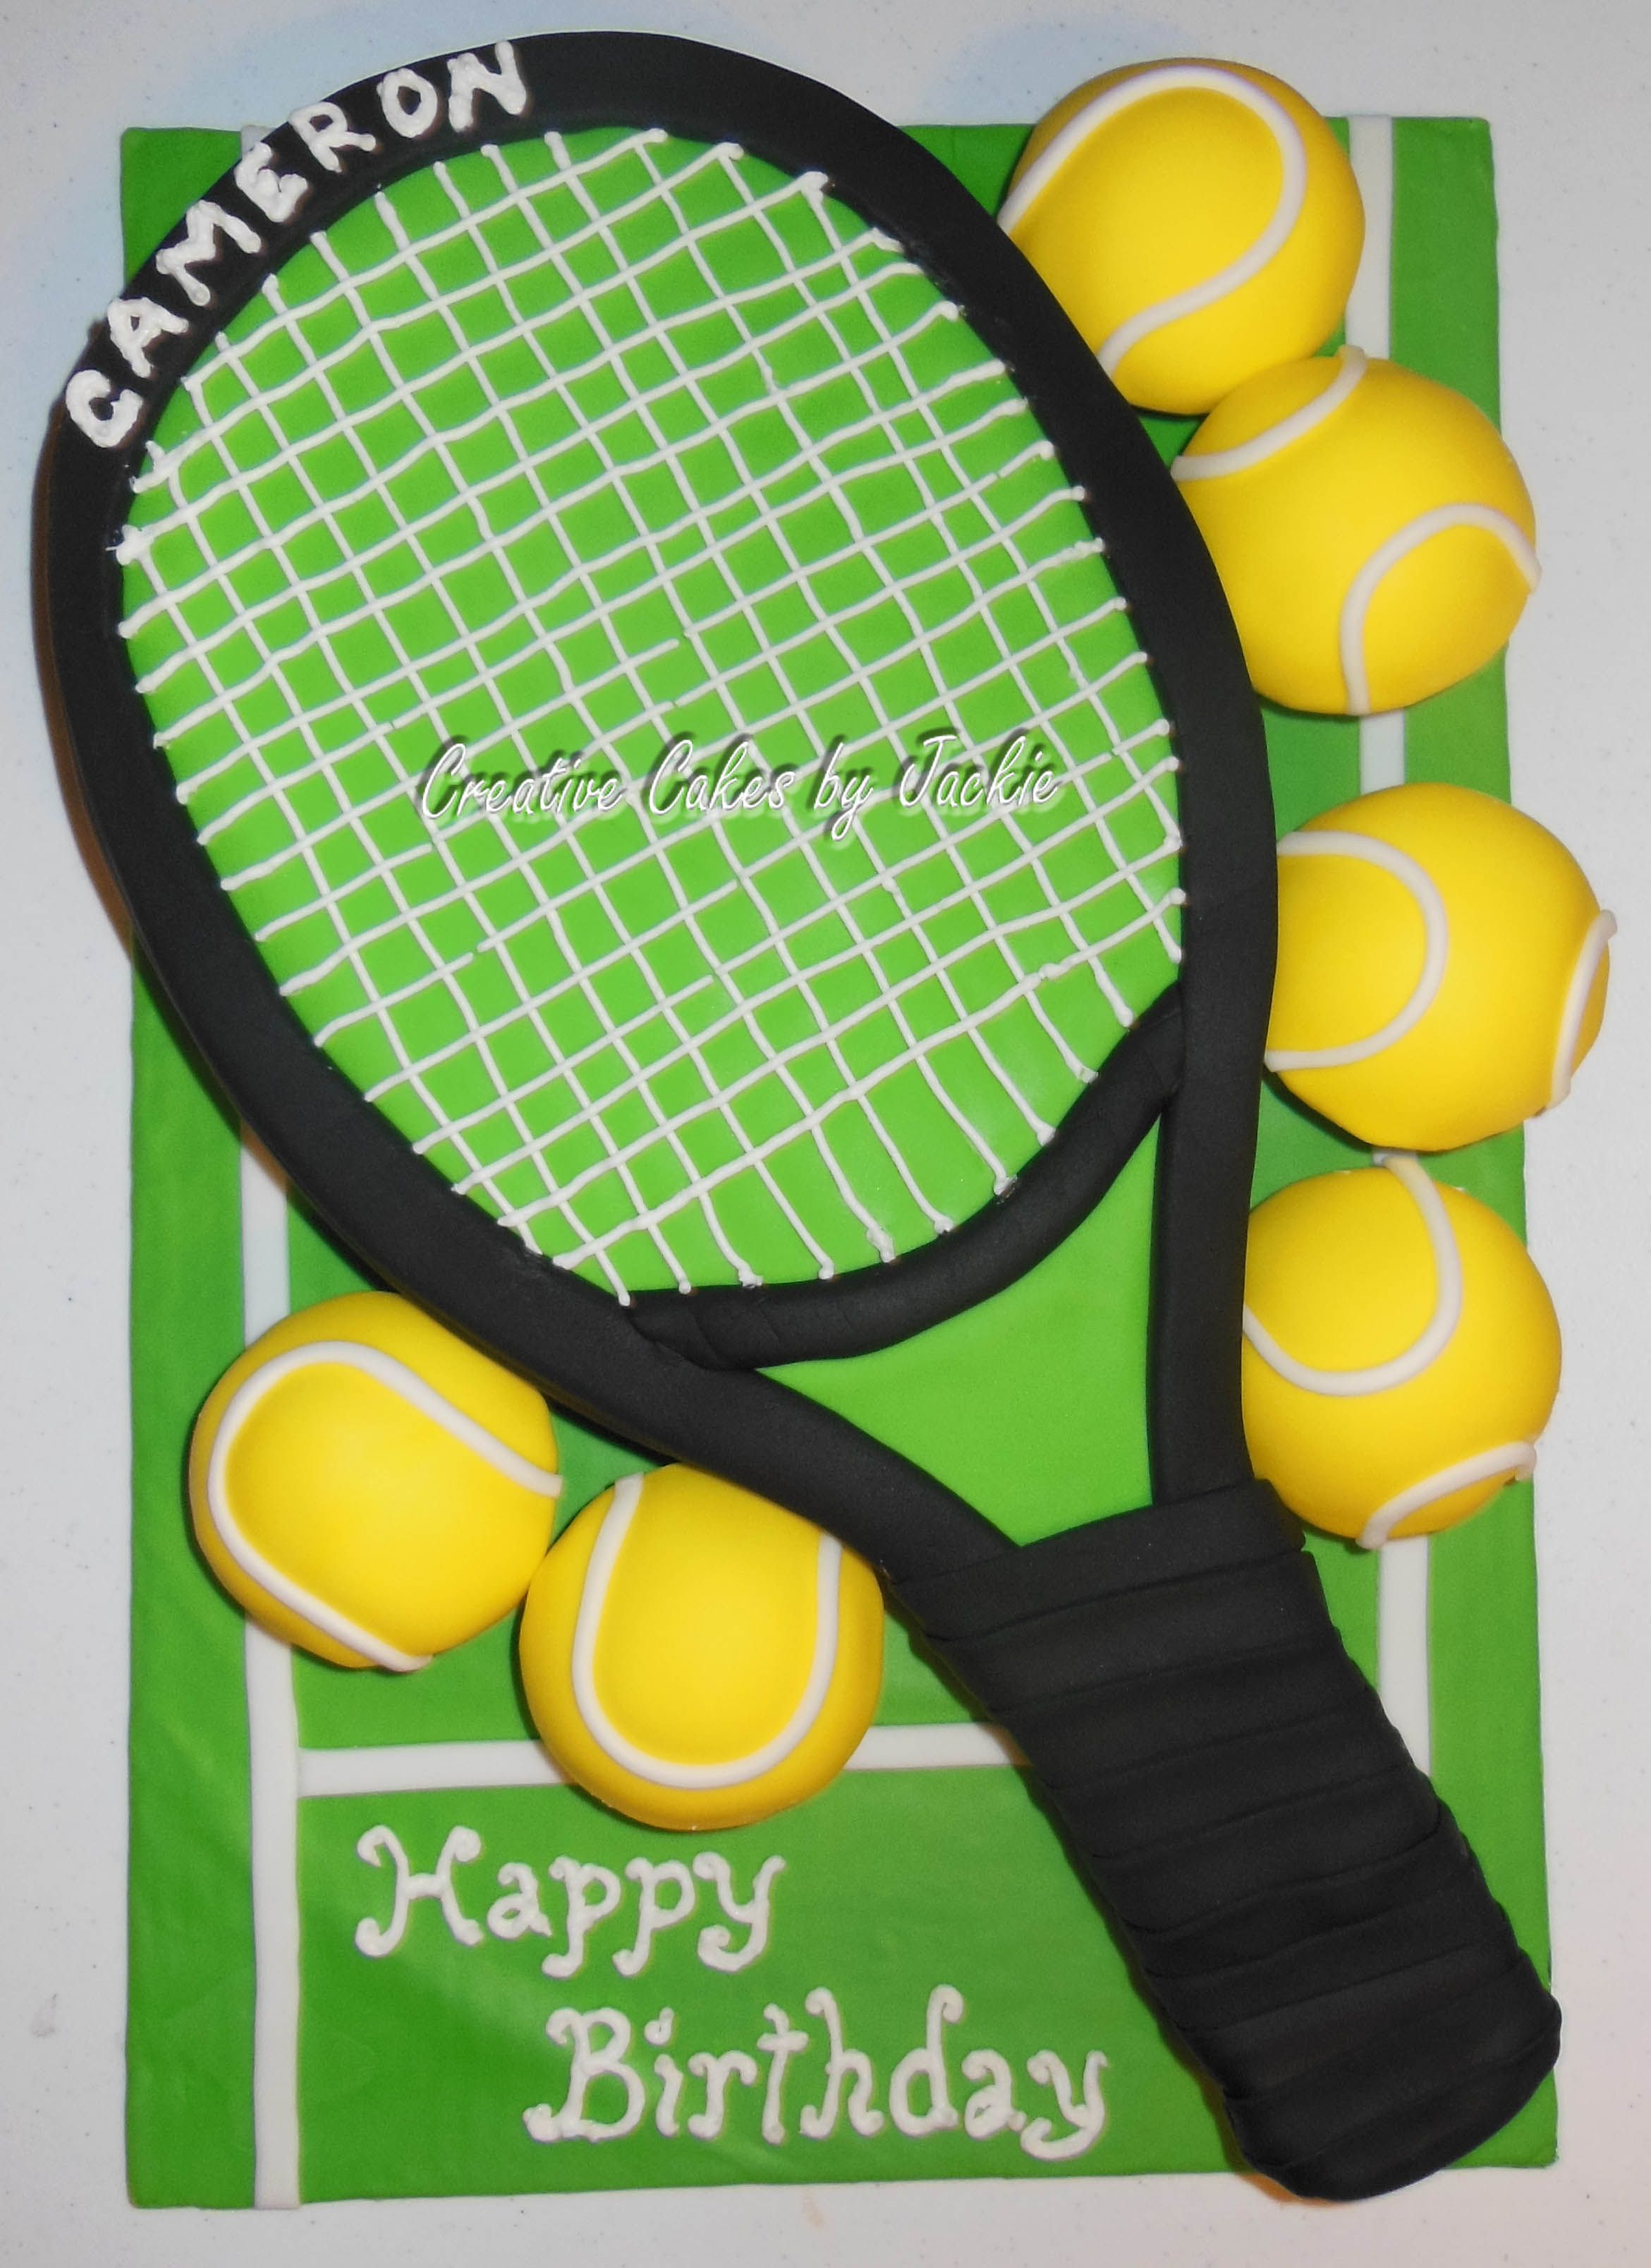 Tennis Racket Cake And Tennis Ball Cupcakes All Fondant Covered